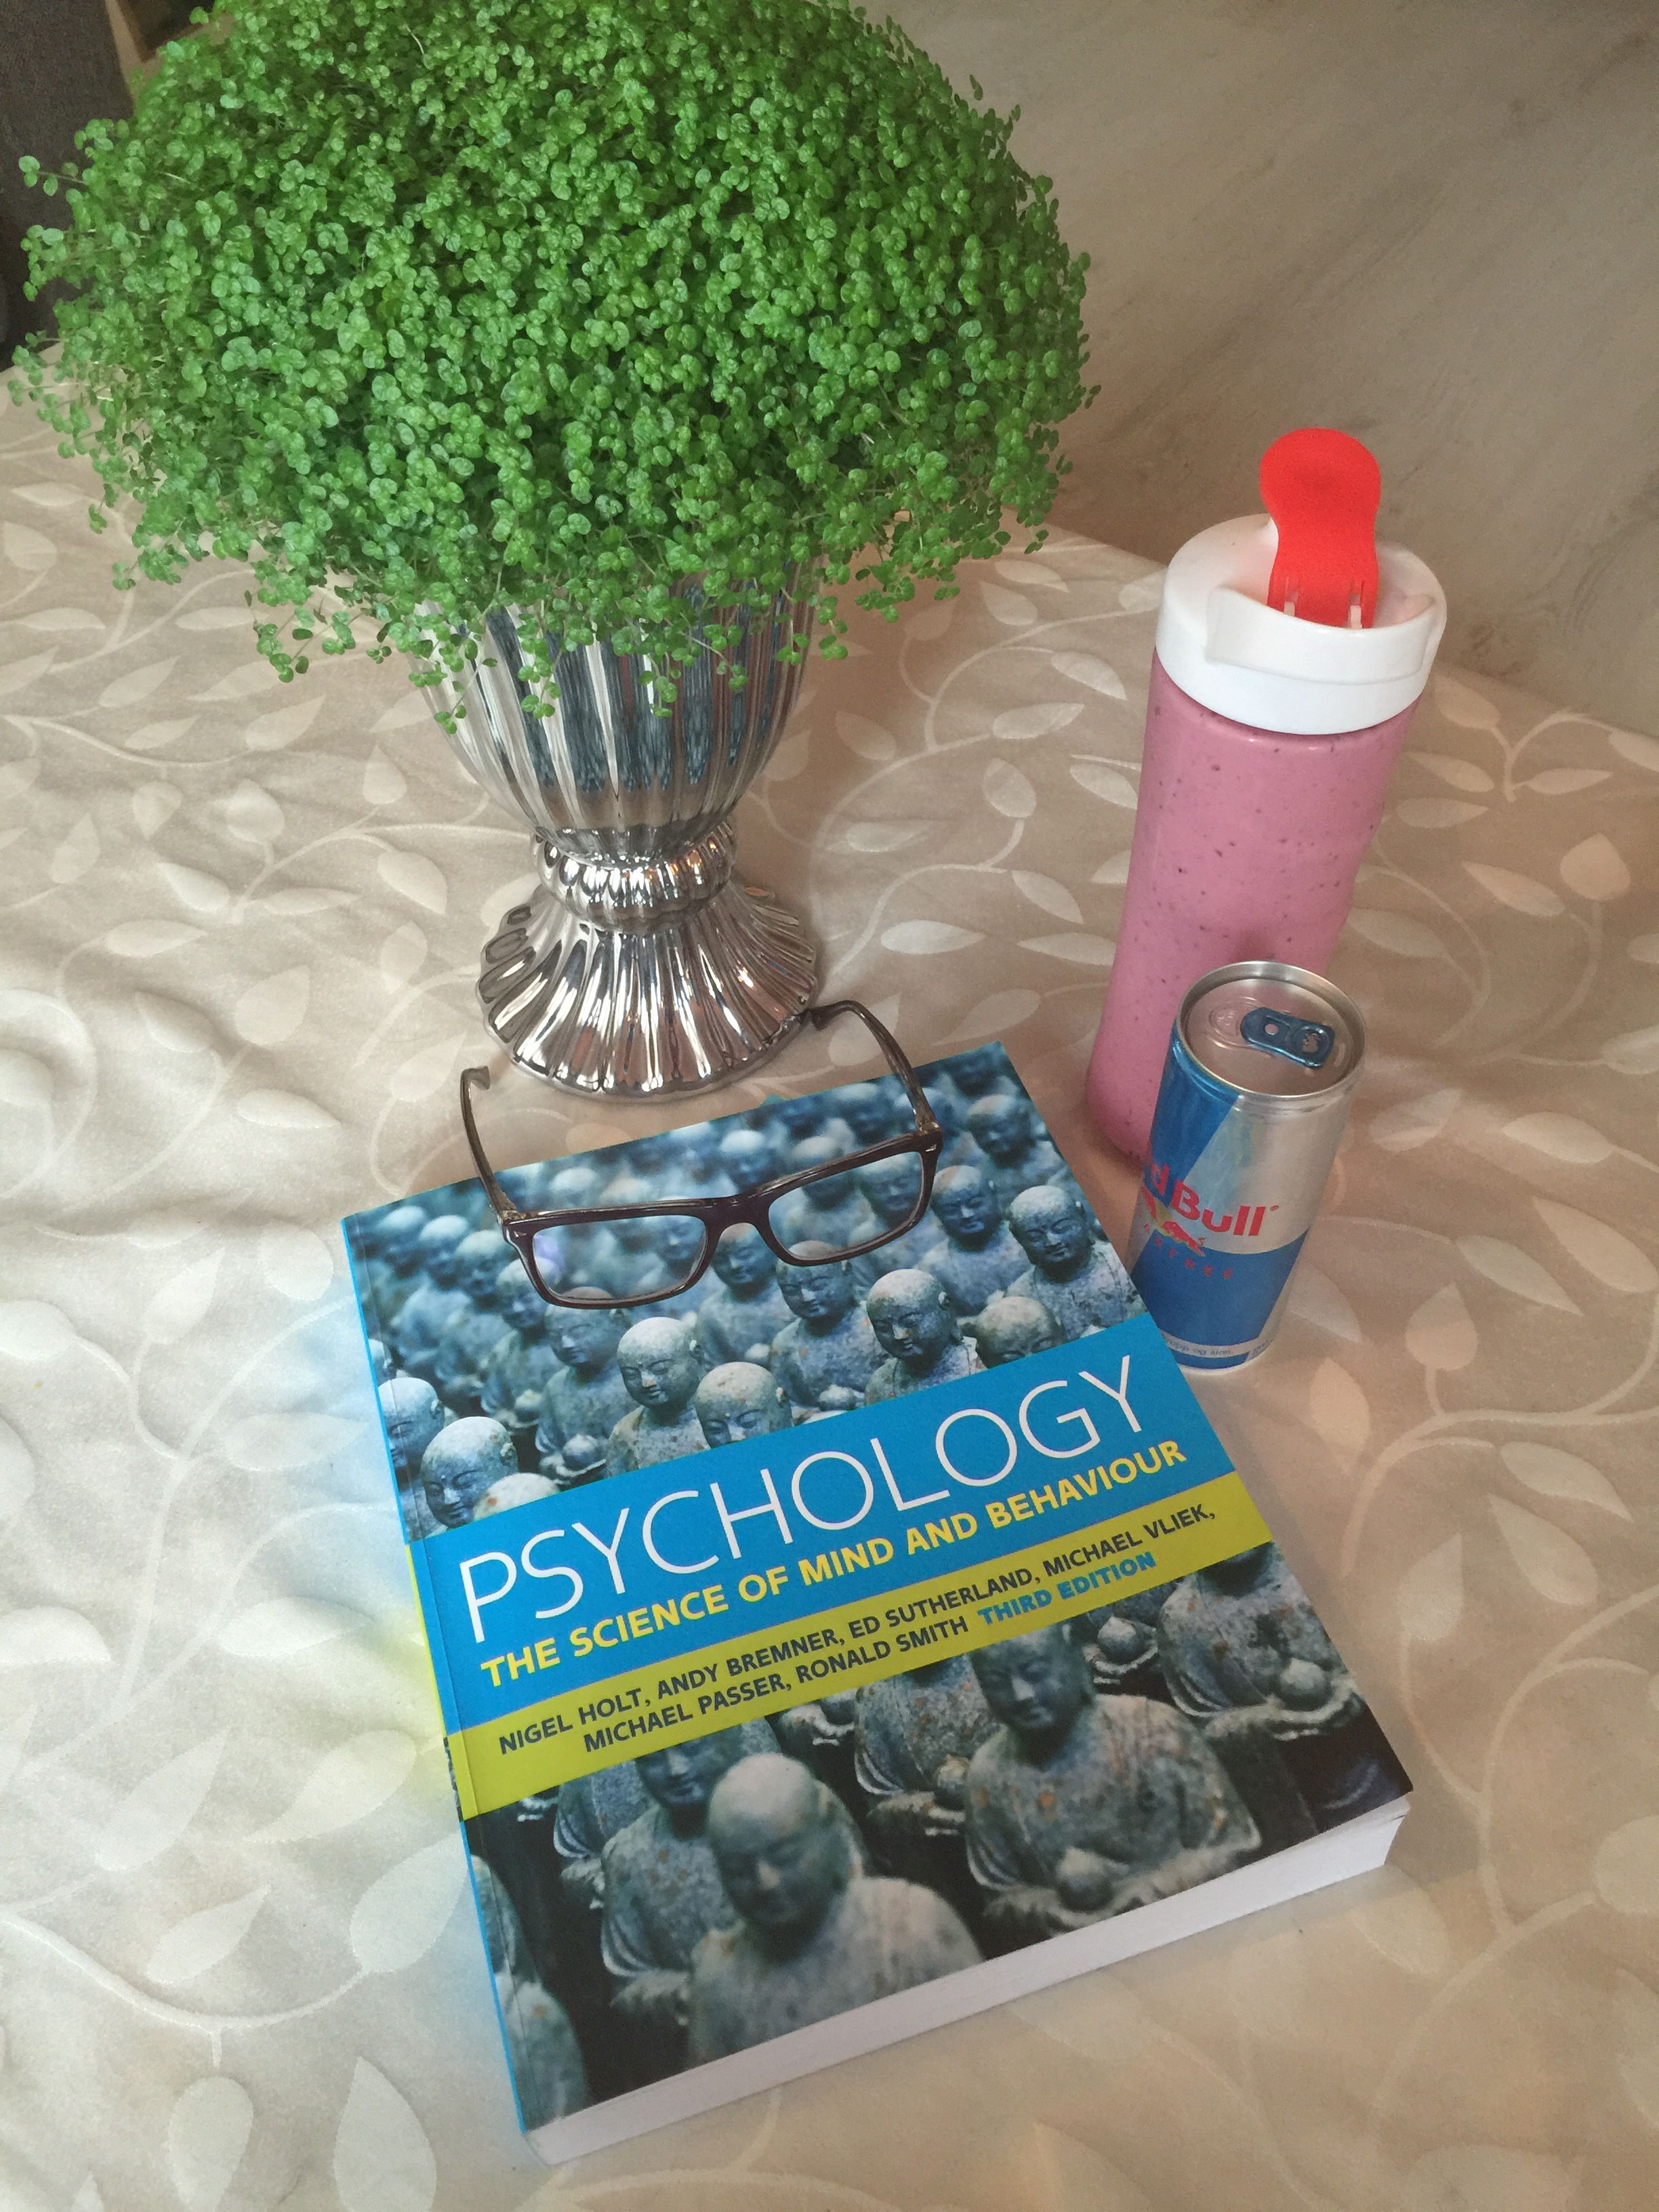 Psychology, the science og mind and behaviour